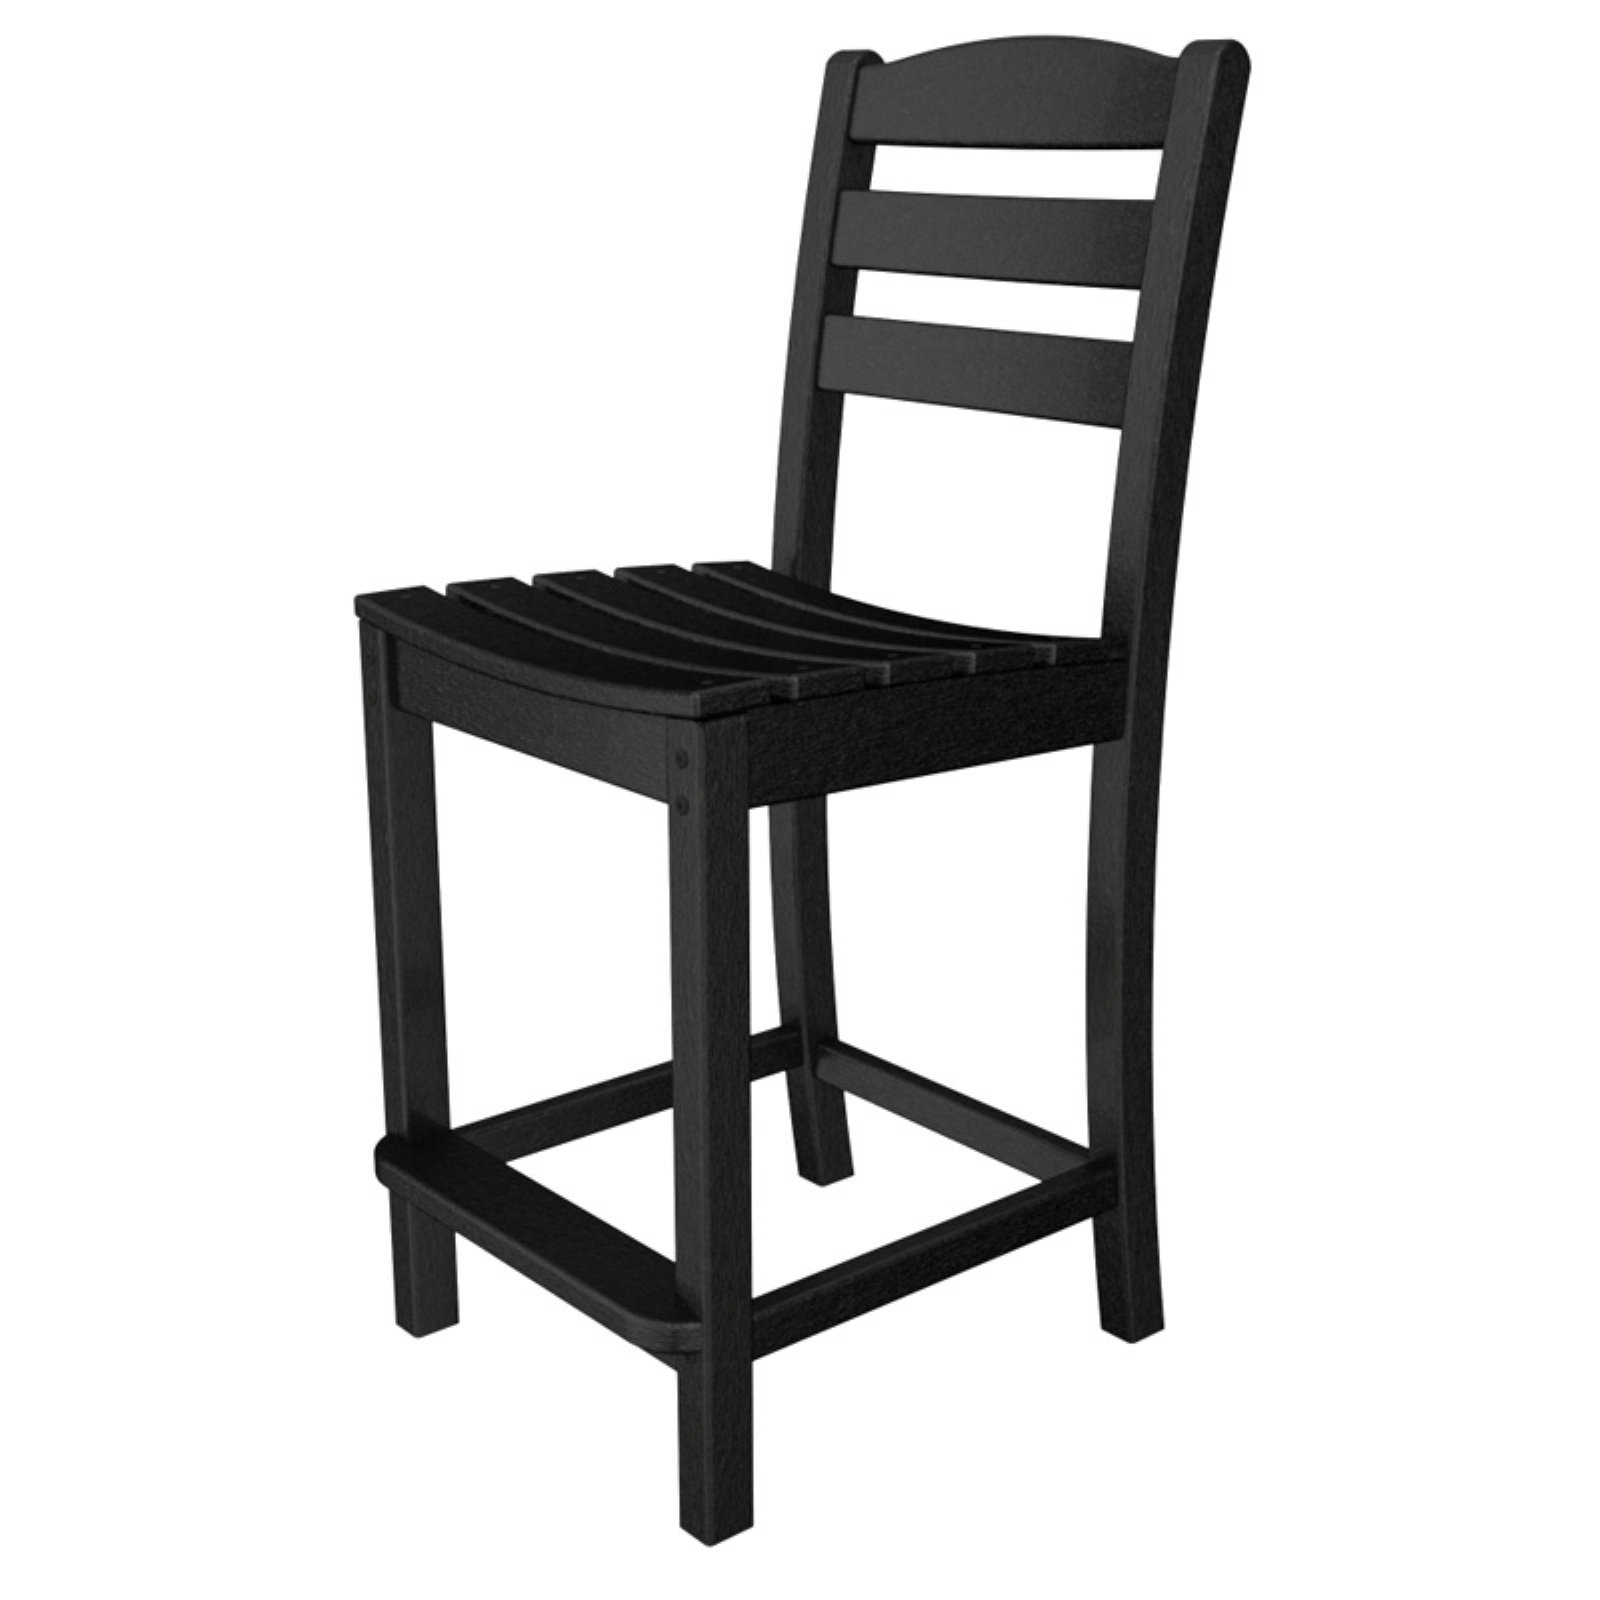 POLYWOOD® La Casa Cafe Recycled Plastic Counter Height Side Chair